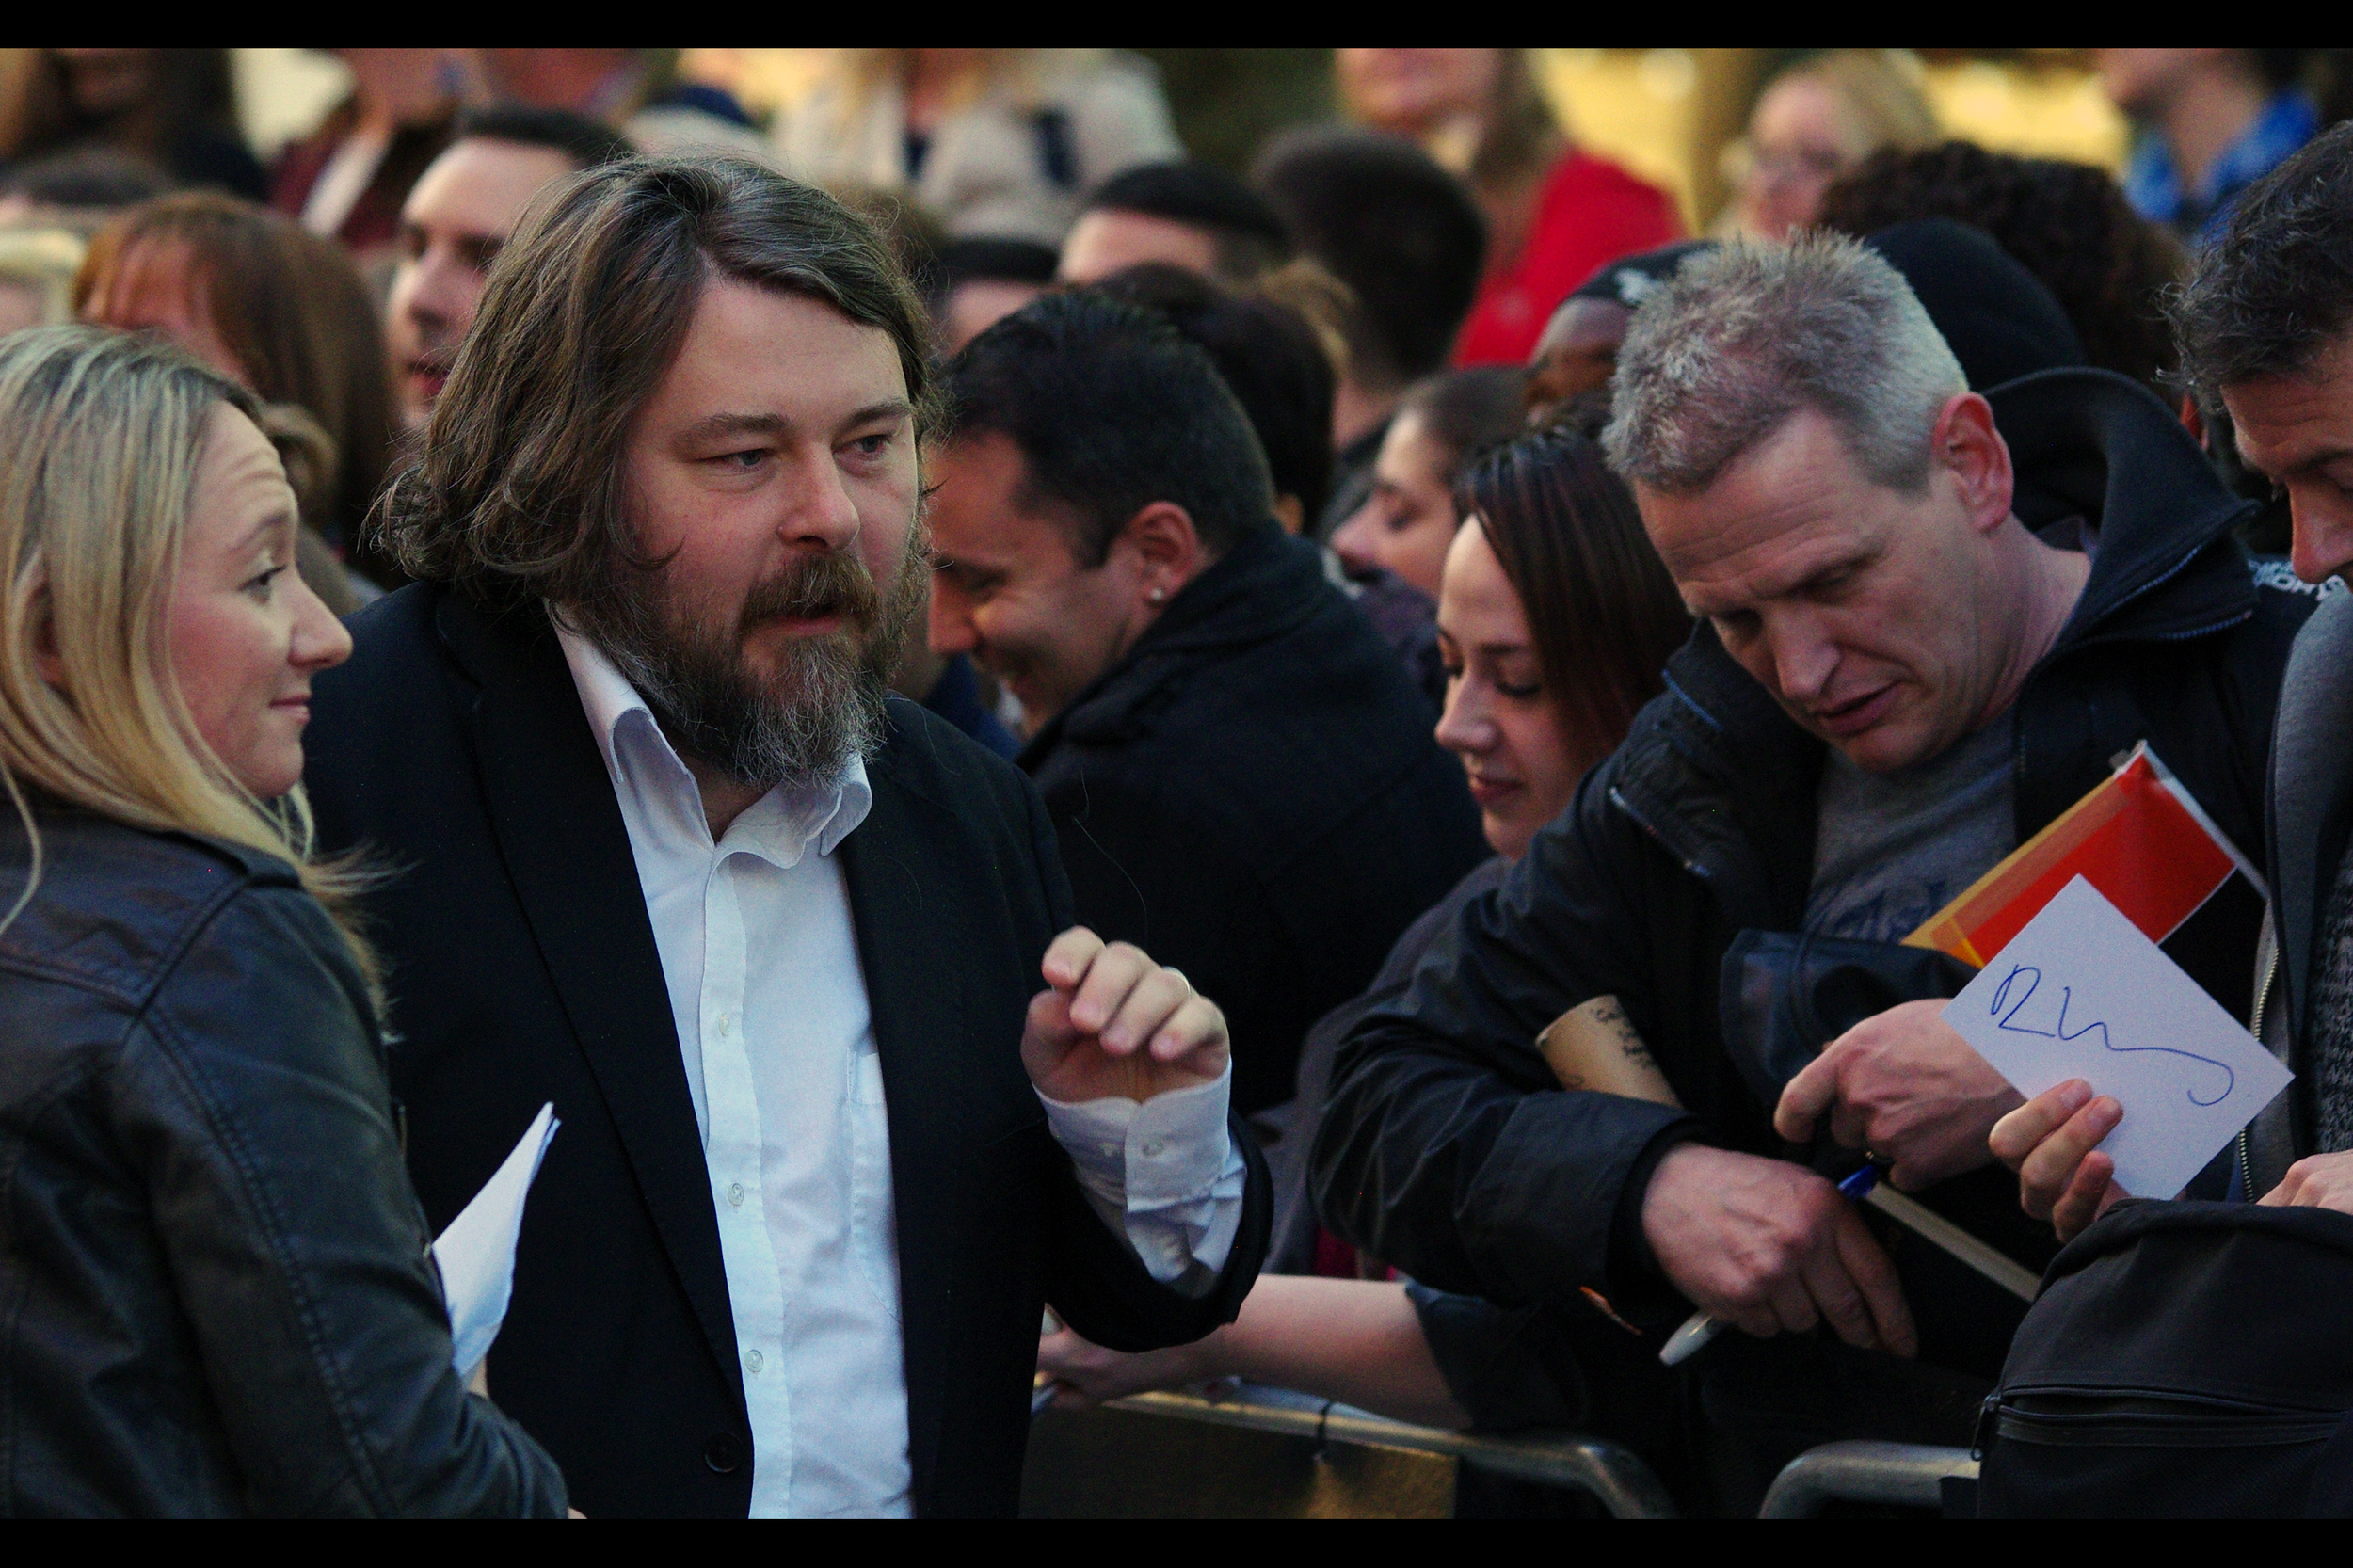 """Okay, so I signed your piece of cardboard. What have you got for me?""  Director Ben Wheatley (who also directed 'Kill List' and 'Sightseers') has arrived."